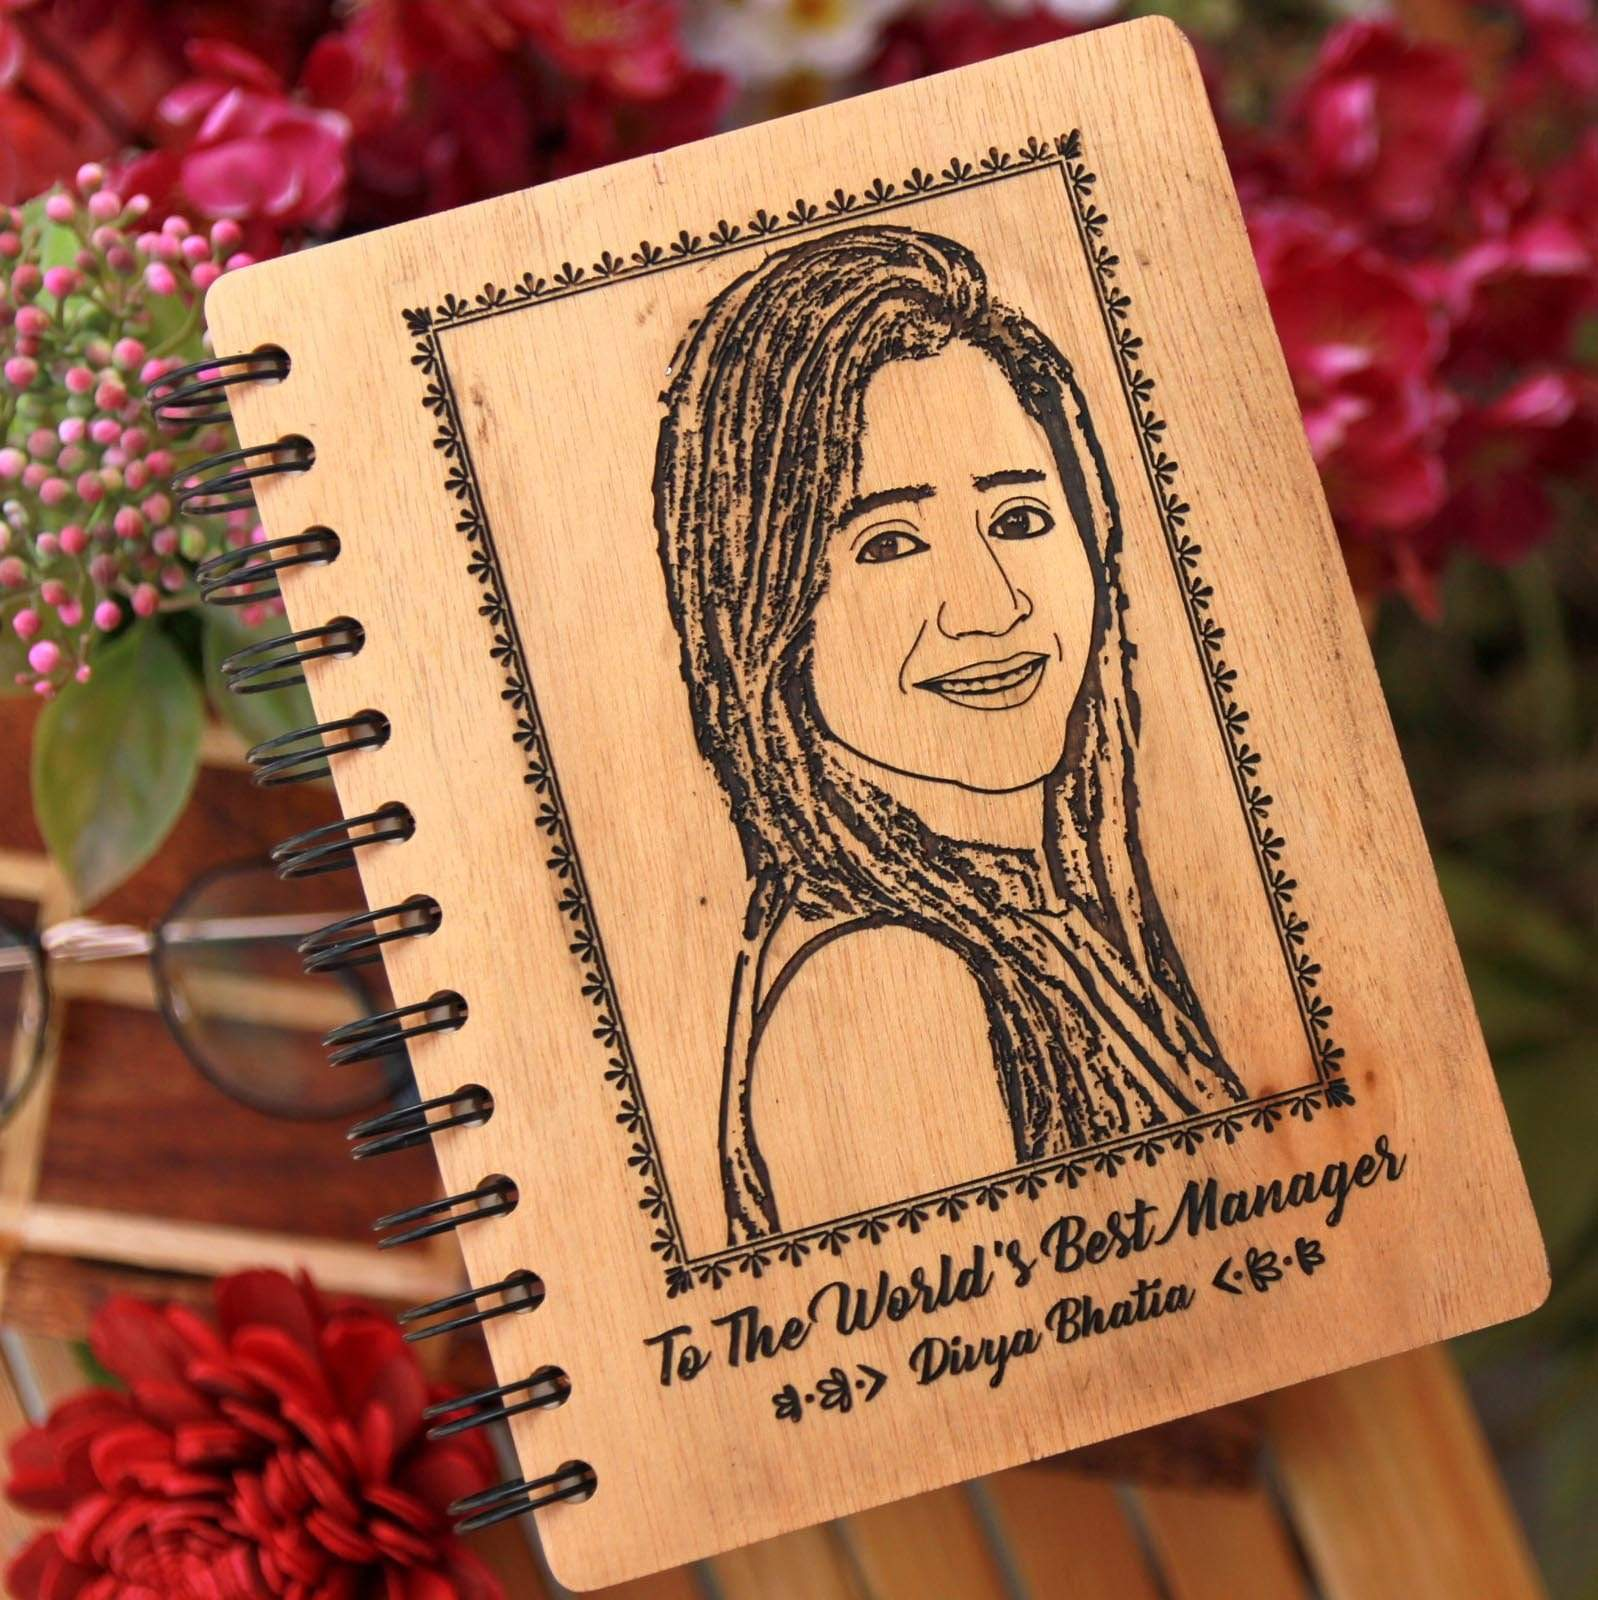 A personalised wooden notebook for the world's best manager. Personalised diary with photo makes good project manager gifts, birthday gift for manager or gift for manager for any occasion.